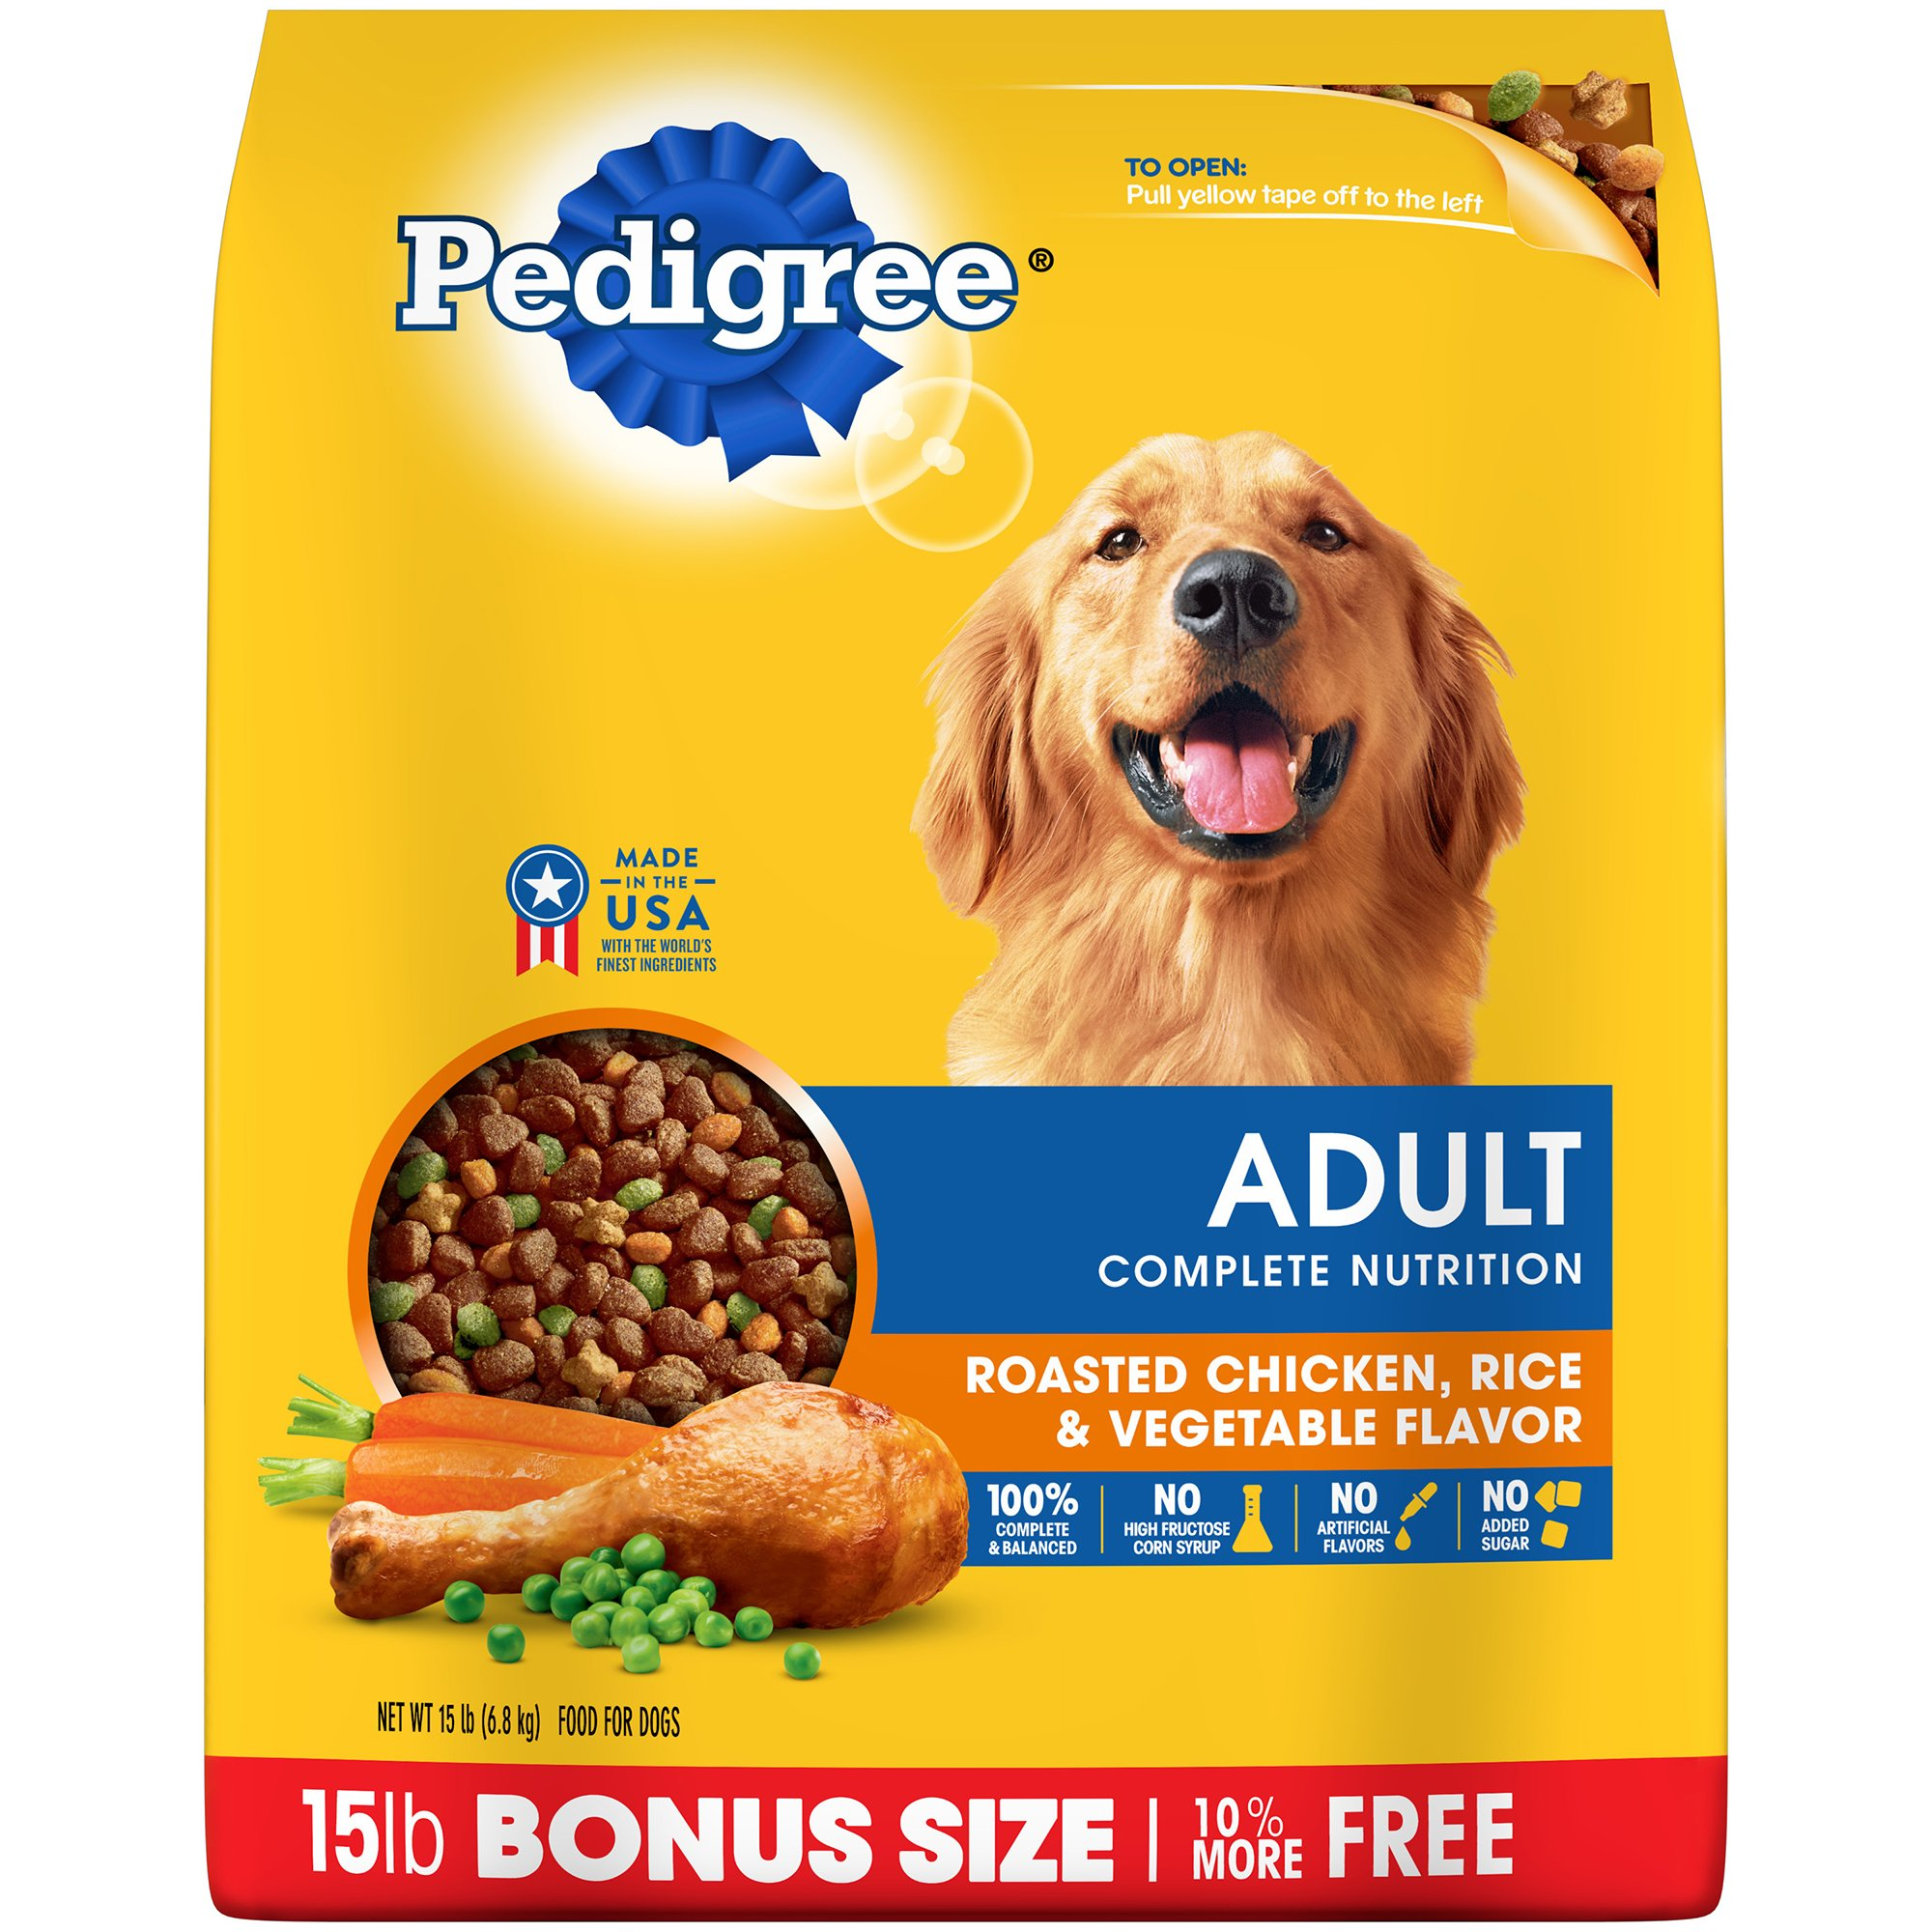 PEDIGREE Complete Nutrition Adult Dry Dog Food Bonus Bags Standard Packaging